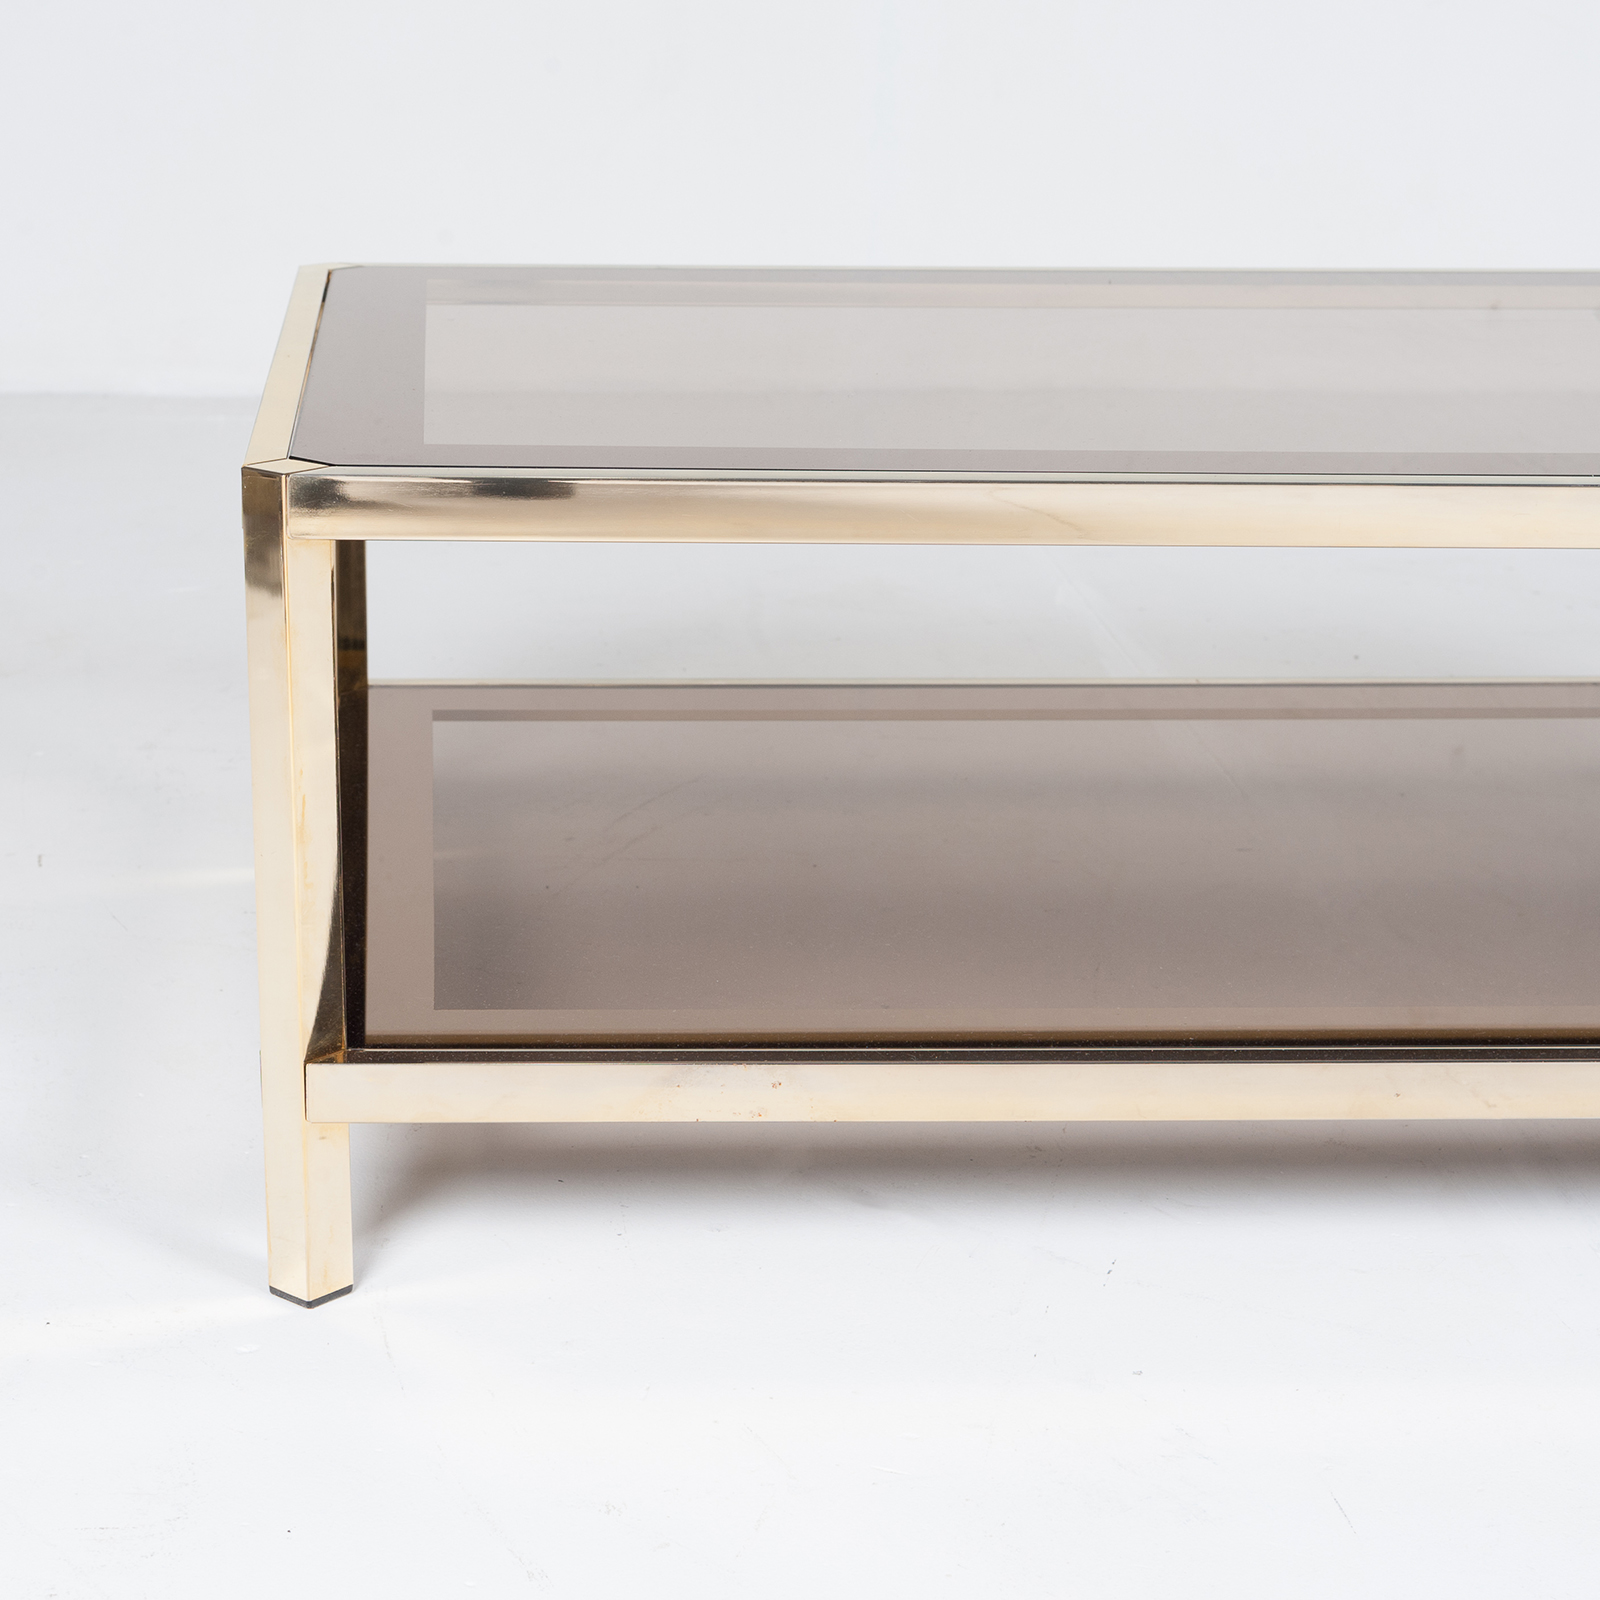 Rectangular Coffee Table By Pierre Cardin In Smoked Glass And Brass, 1960s, France20